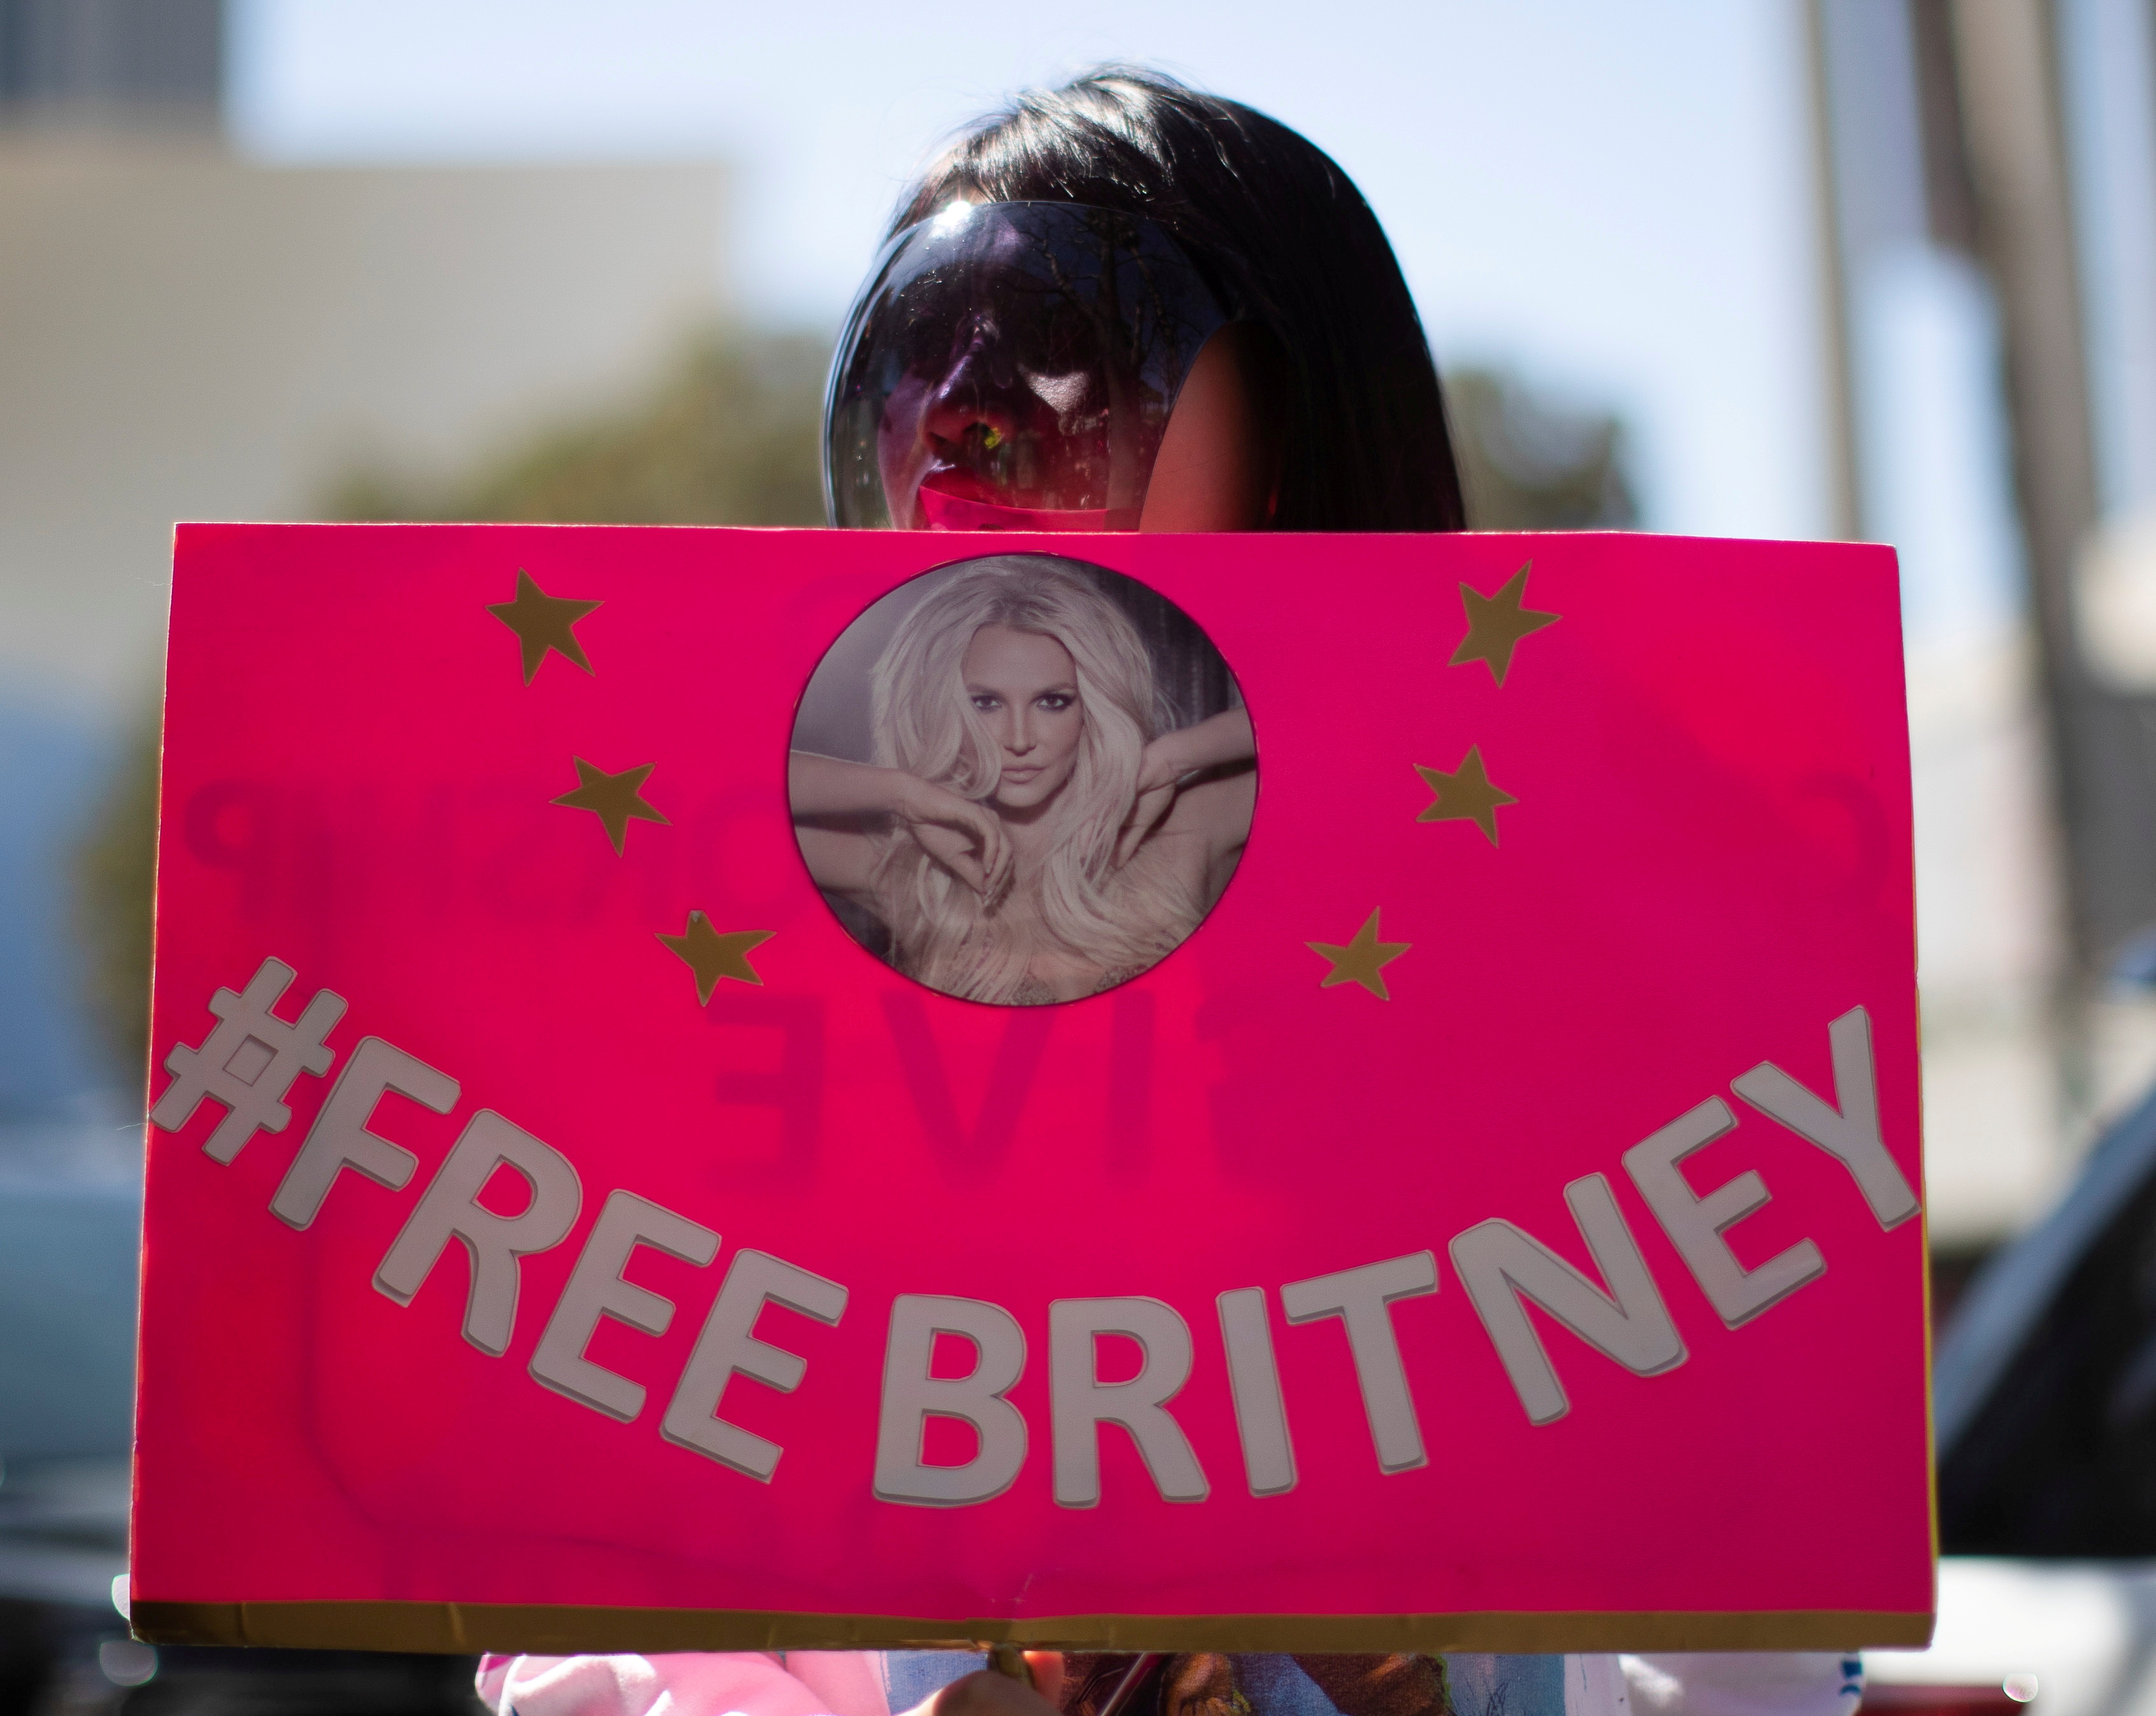 A supporter wearing a personal protective face shield holds a sign while rallying for pop star Britney Spears during a conservatorship case hearing at Stanley Mosk Courthouse in Los Angeles, California, U.S., March 17, 2021.  REUTERS/Mario Anzuoni